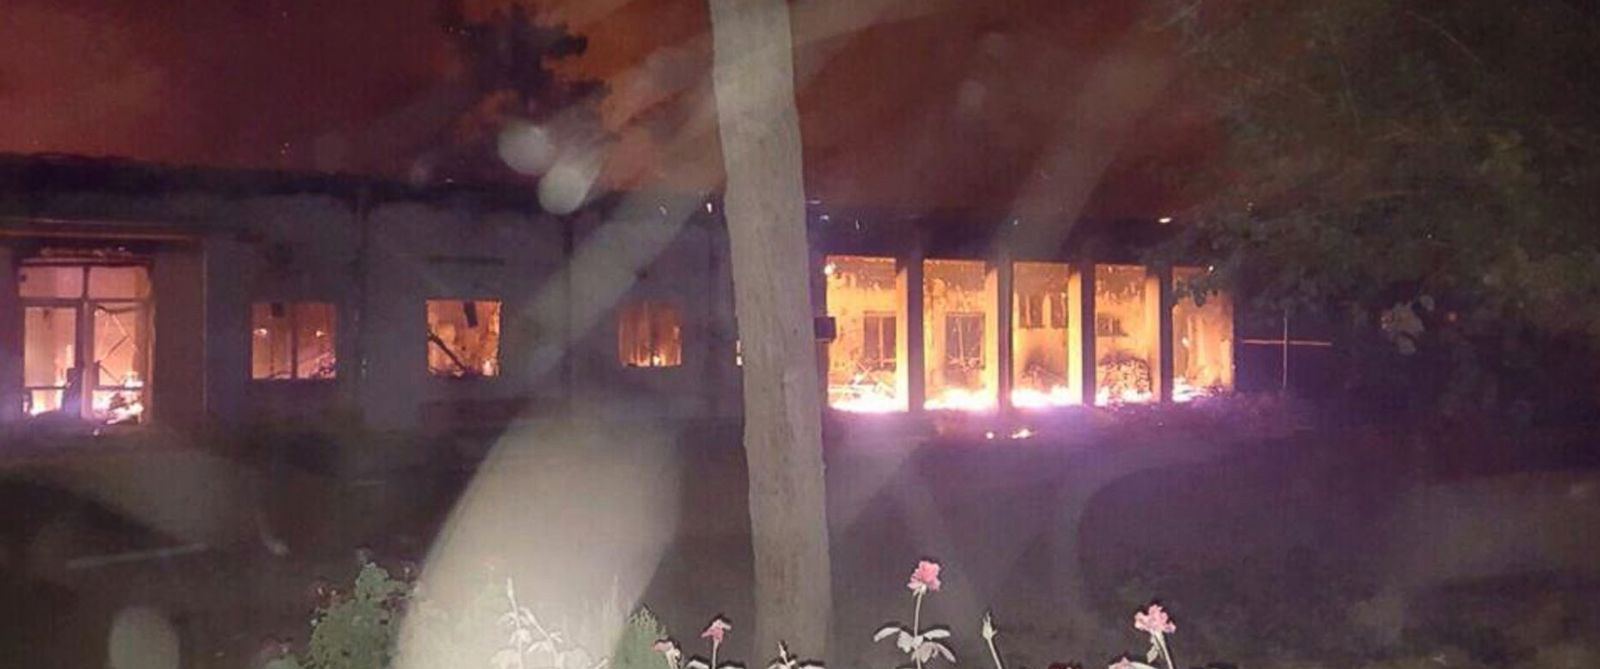 PHOTO: The Doctors Without Borders hospital is seen in flames in Kunduz, Afghanistan, Oct. 3, 2015.